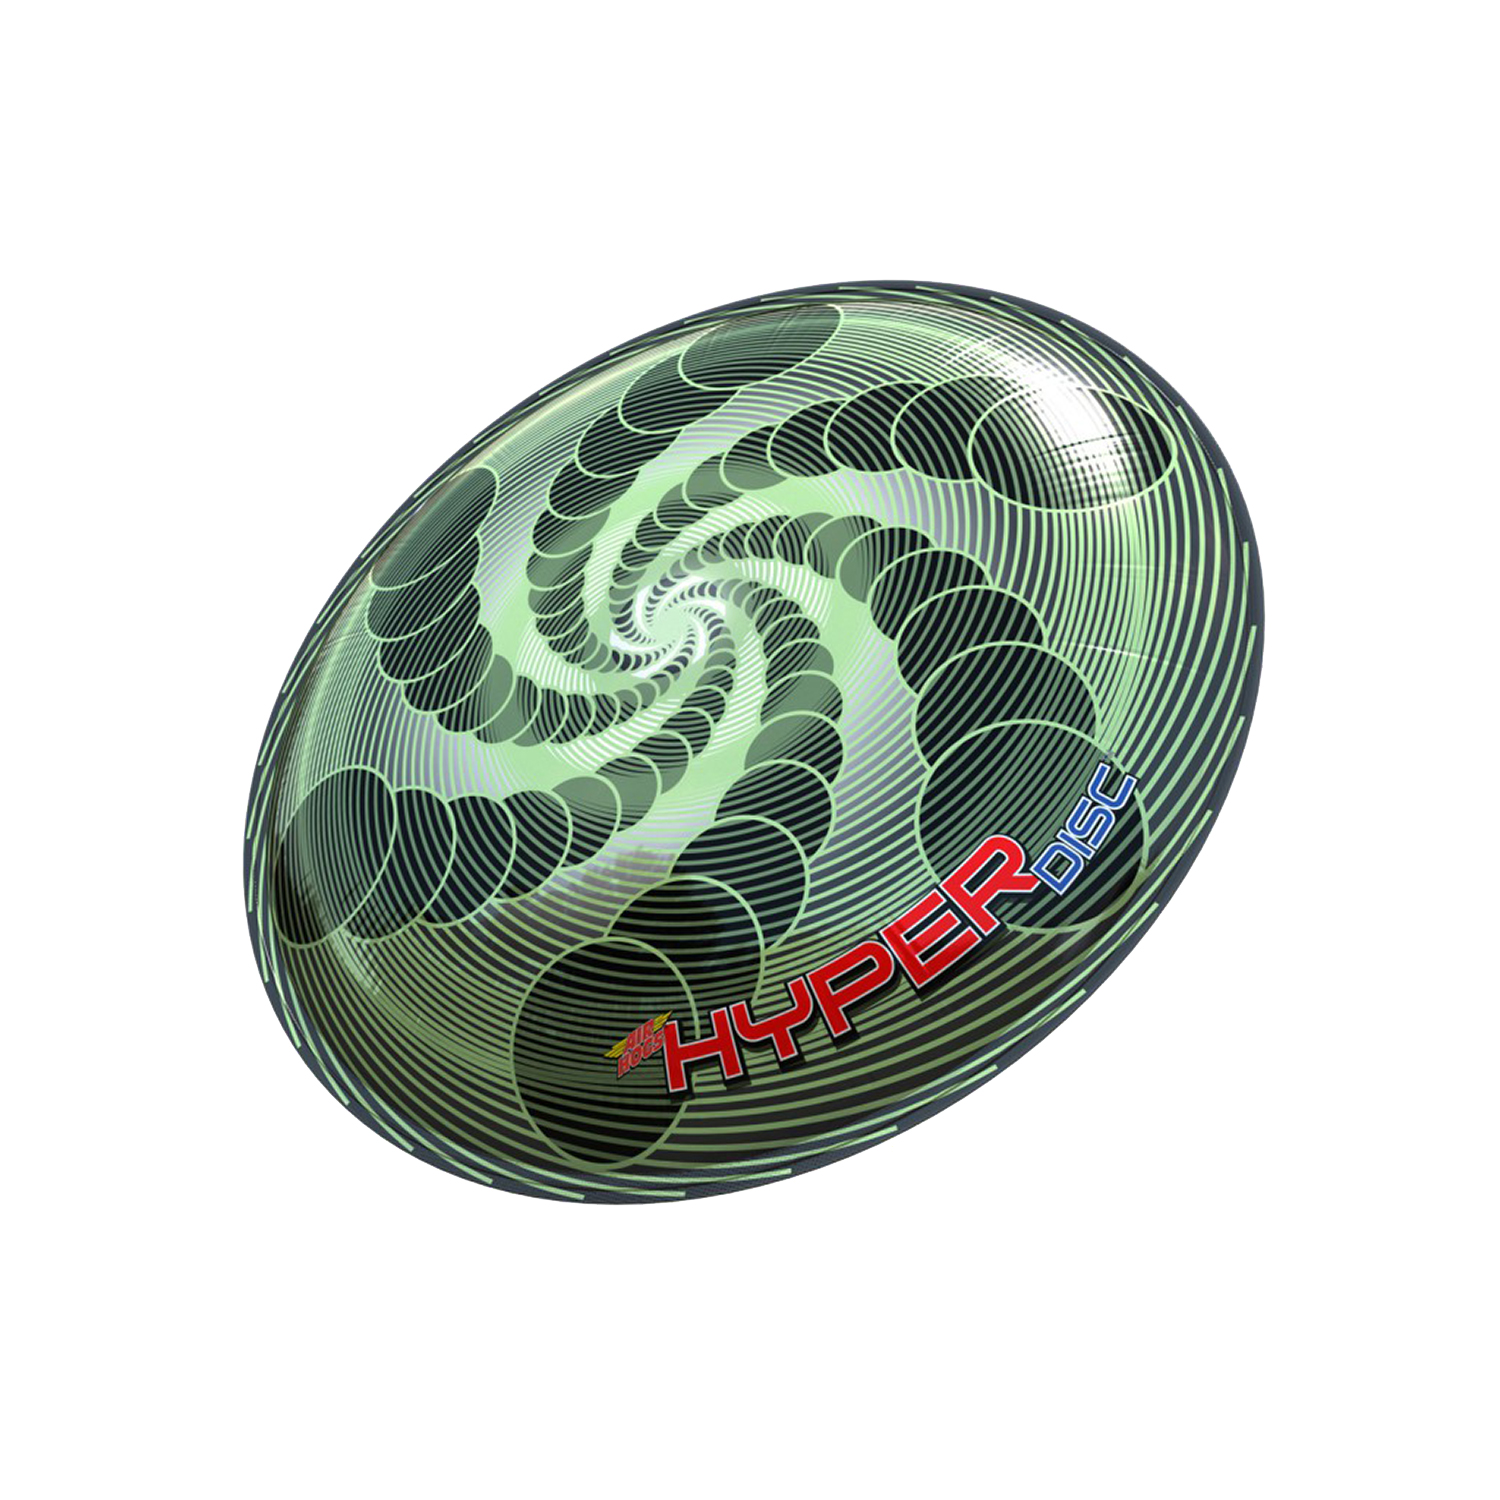 Disc zburator Hyper Air Hogs - Dot Swirl imagine